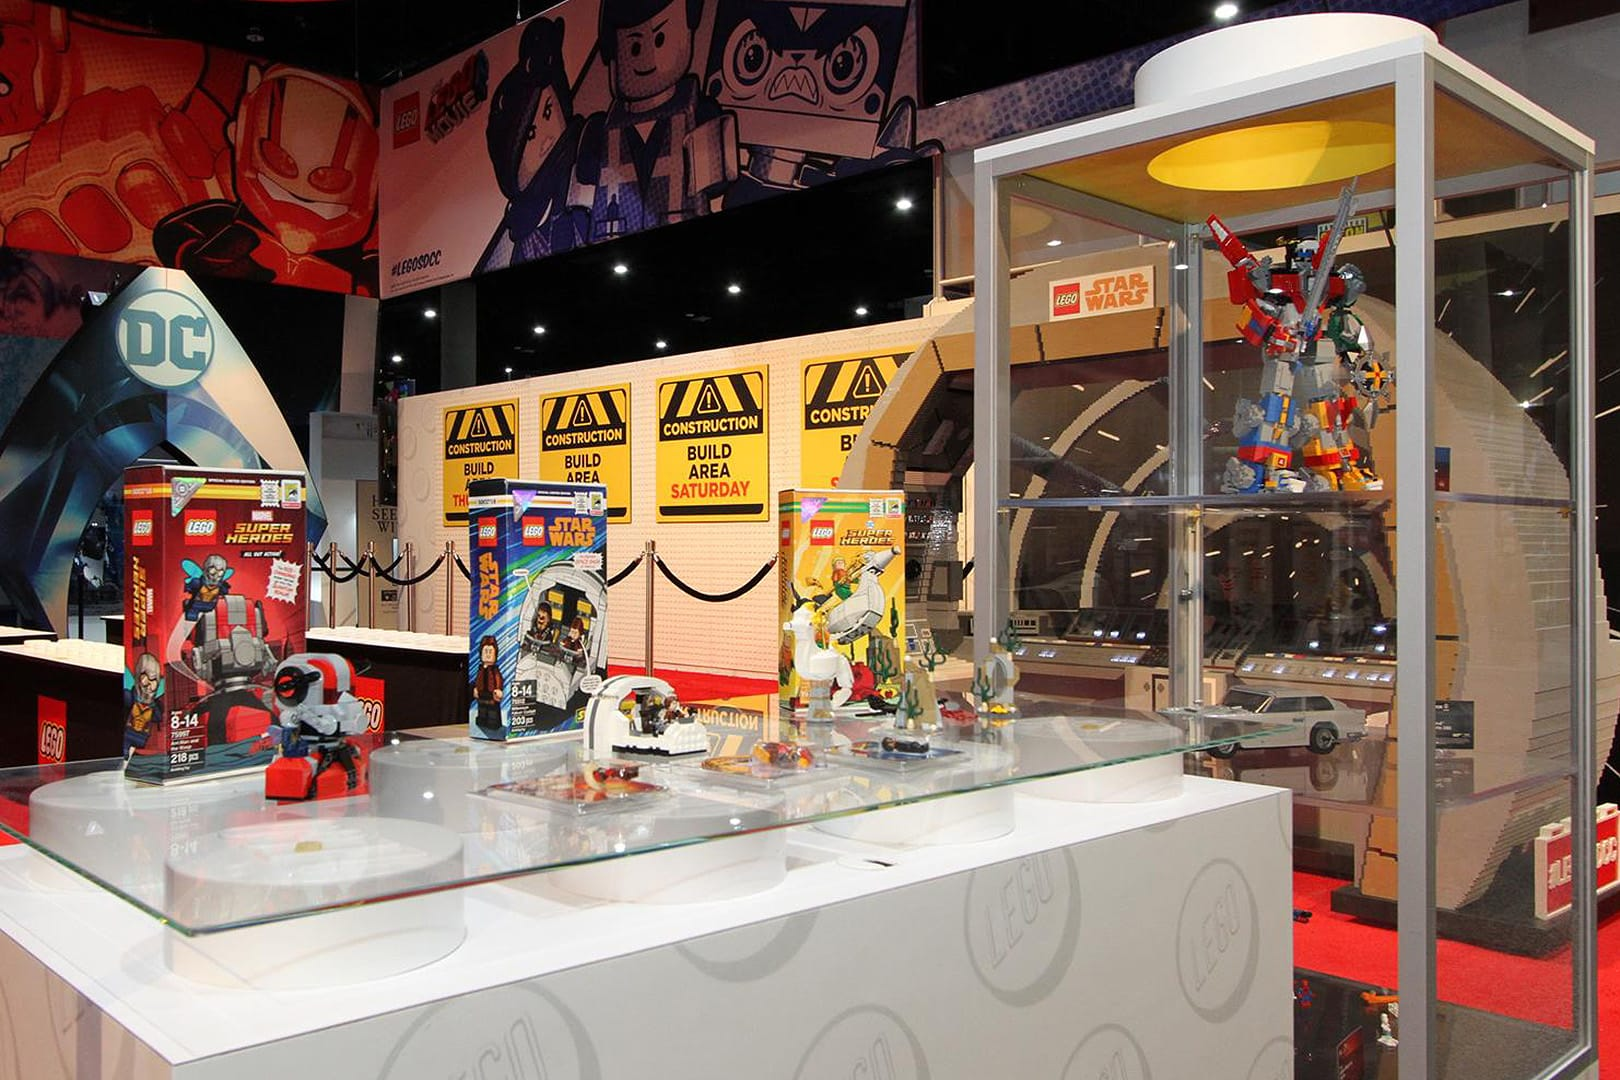 Comic-Con Booth Design: MS, Andy Munoz, Jen Healy, Dave Cross, Creatacor